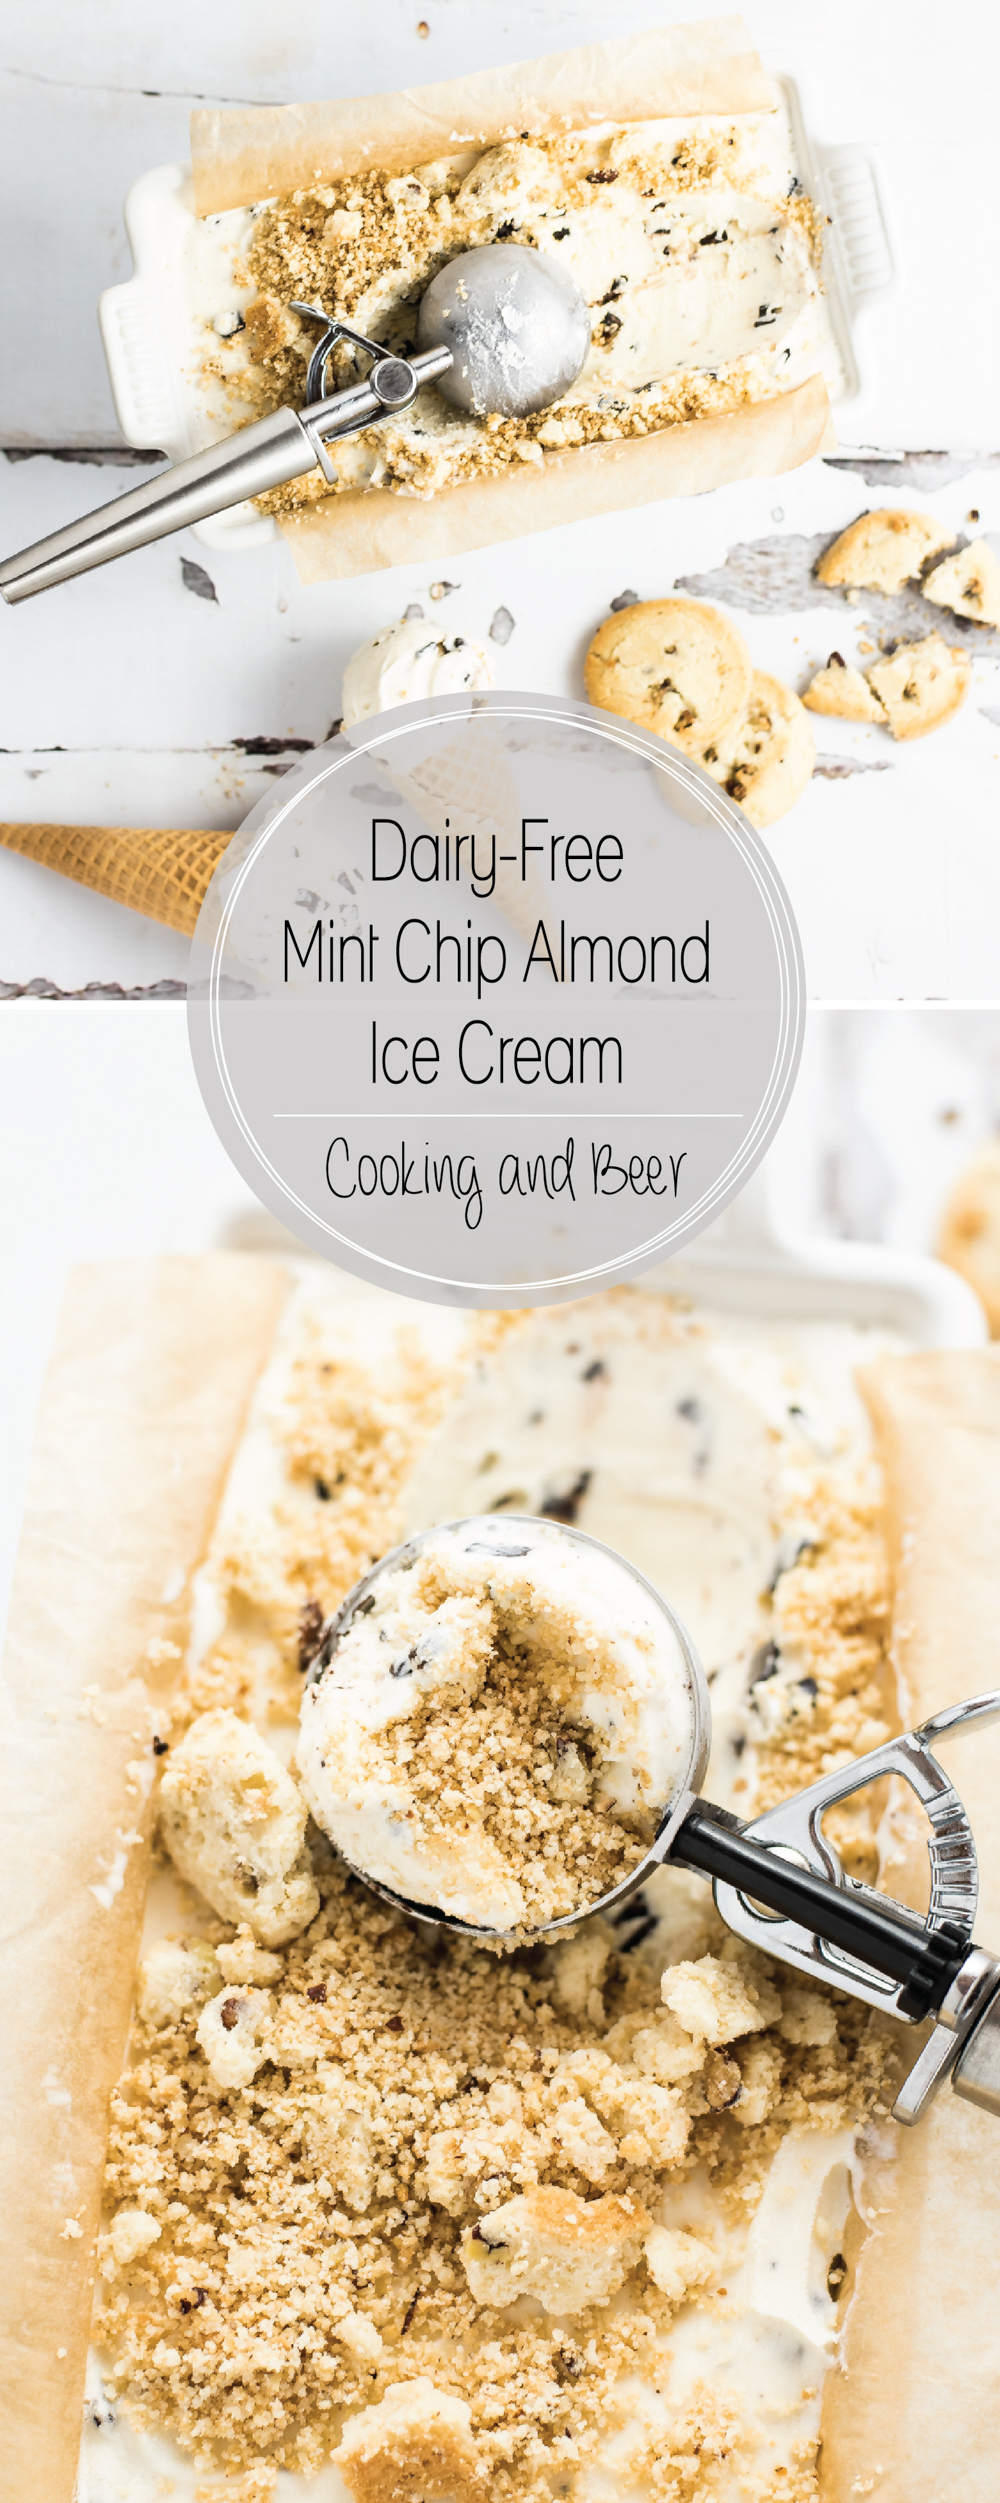 Dairy-Free Mint Chip Almond Ice Cream is a creamy, smooth, and super refreshing way to cool down this summer!